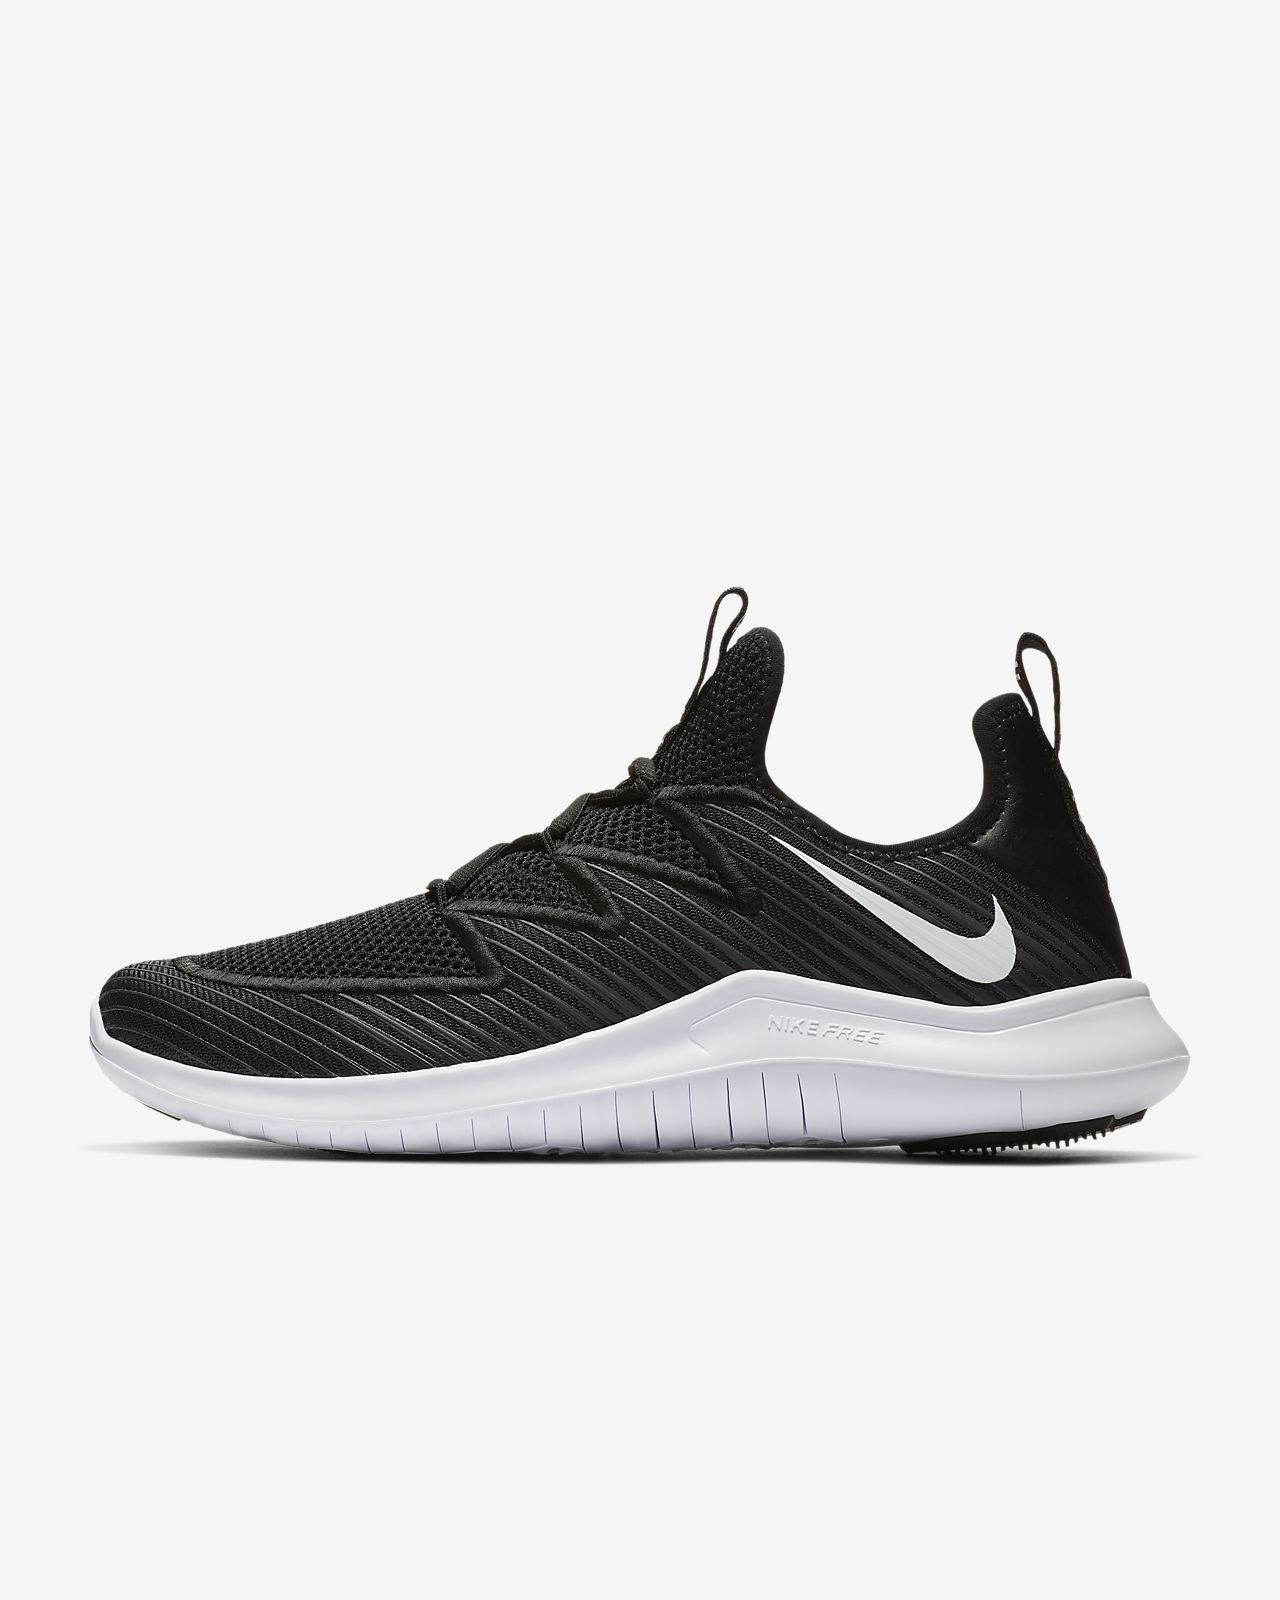 differently ffc89 3b2c9 ... Chaussure de training Nike Free TR 9 Ultra pour Homme